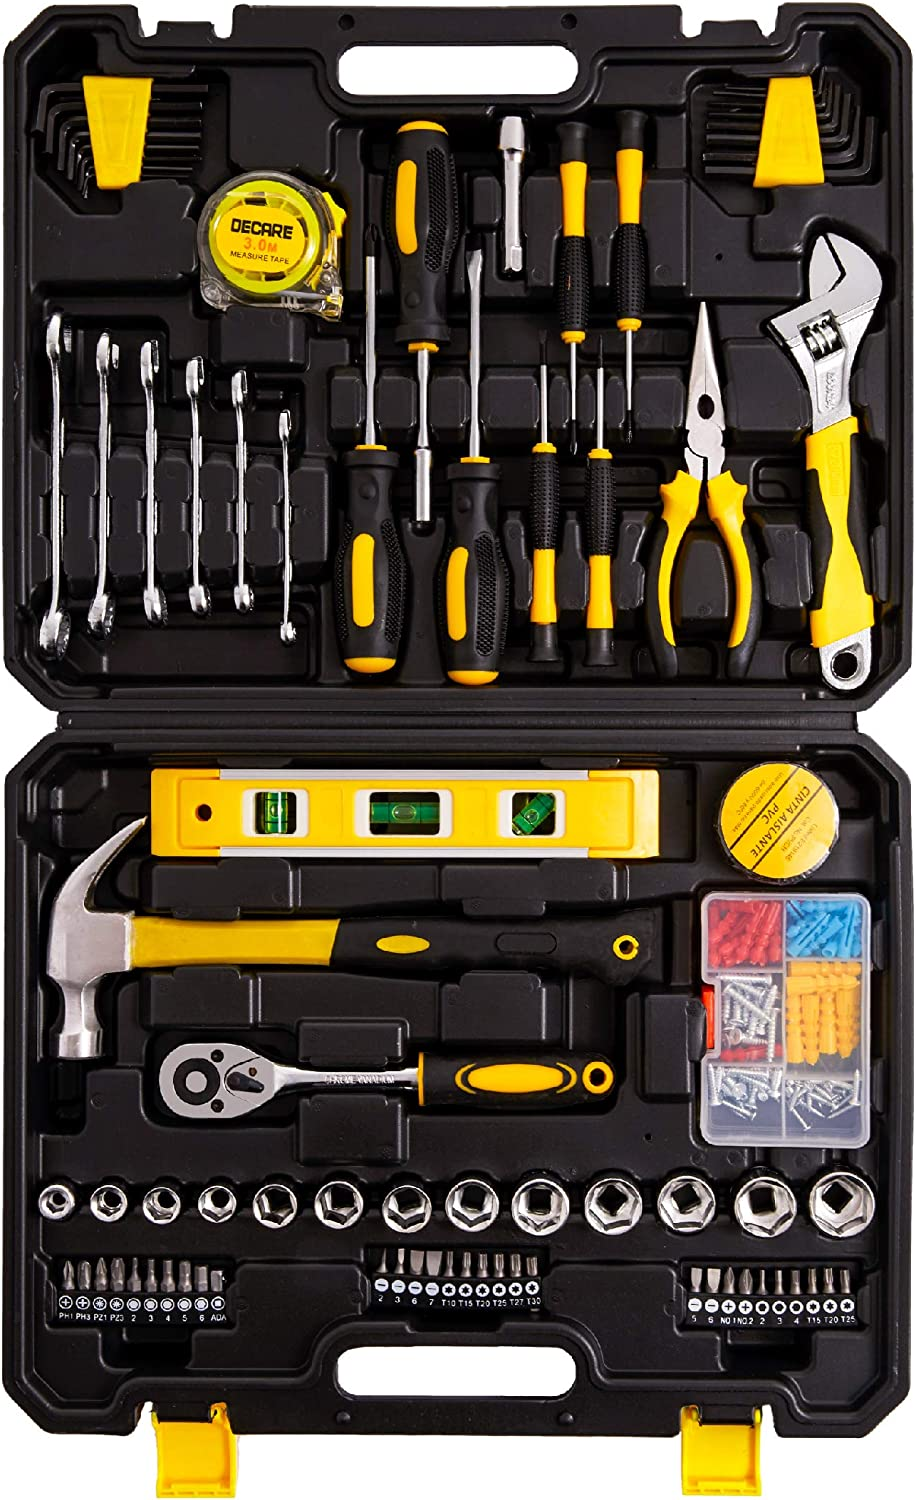 Tool Kit Set 128 Pieces Selling Indianapolis Mall Hand Household Metric - A